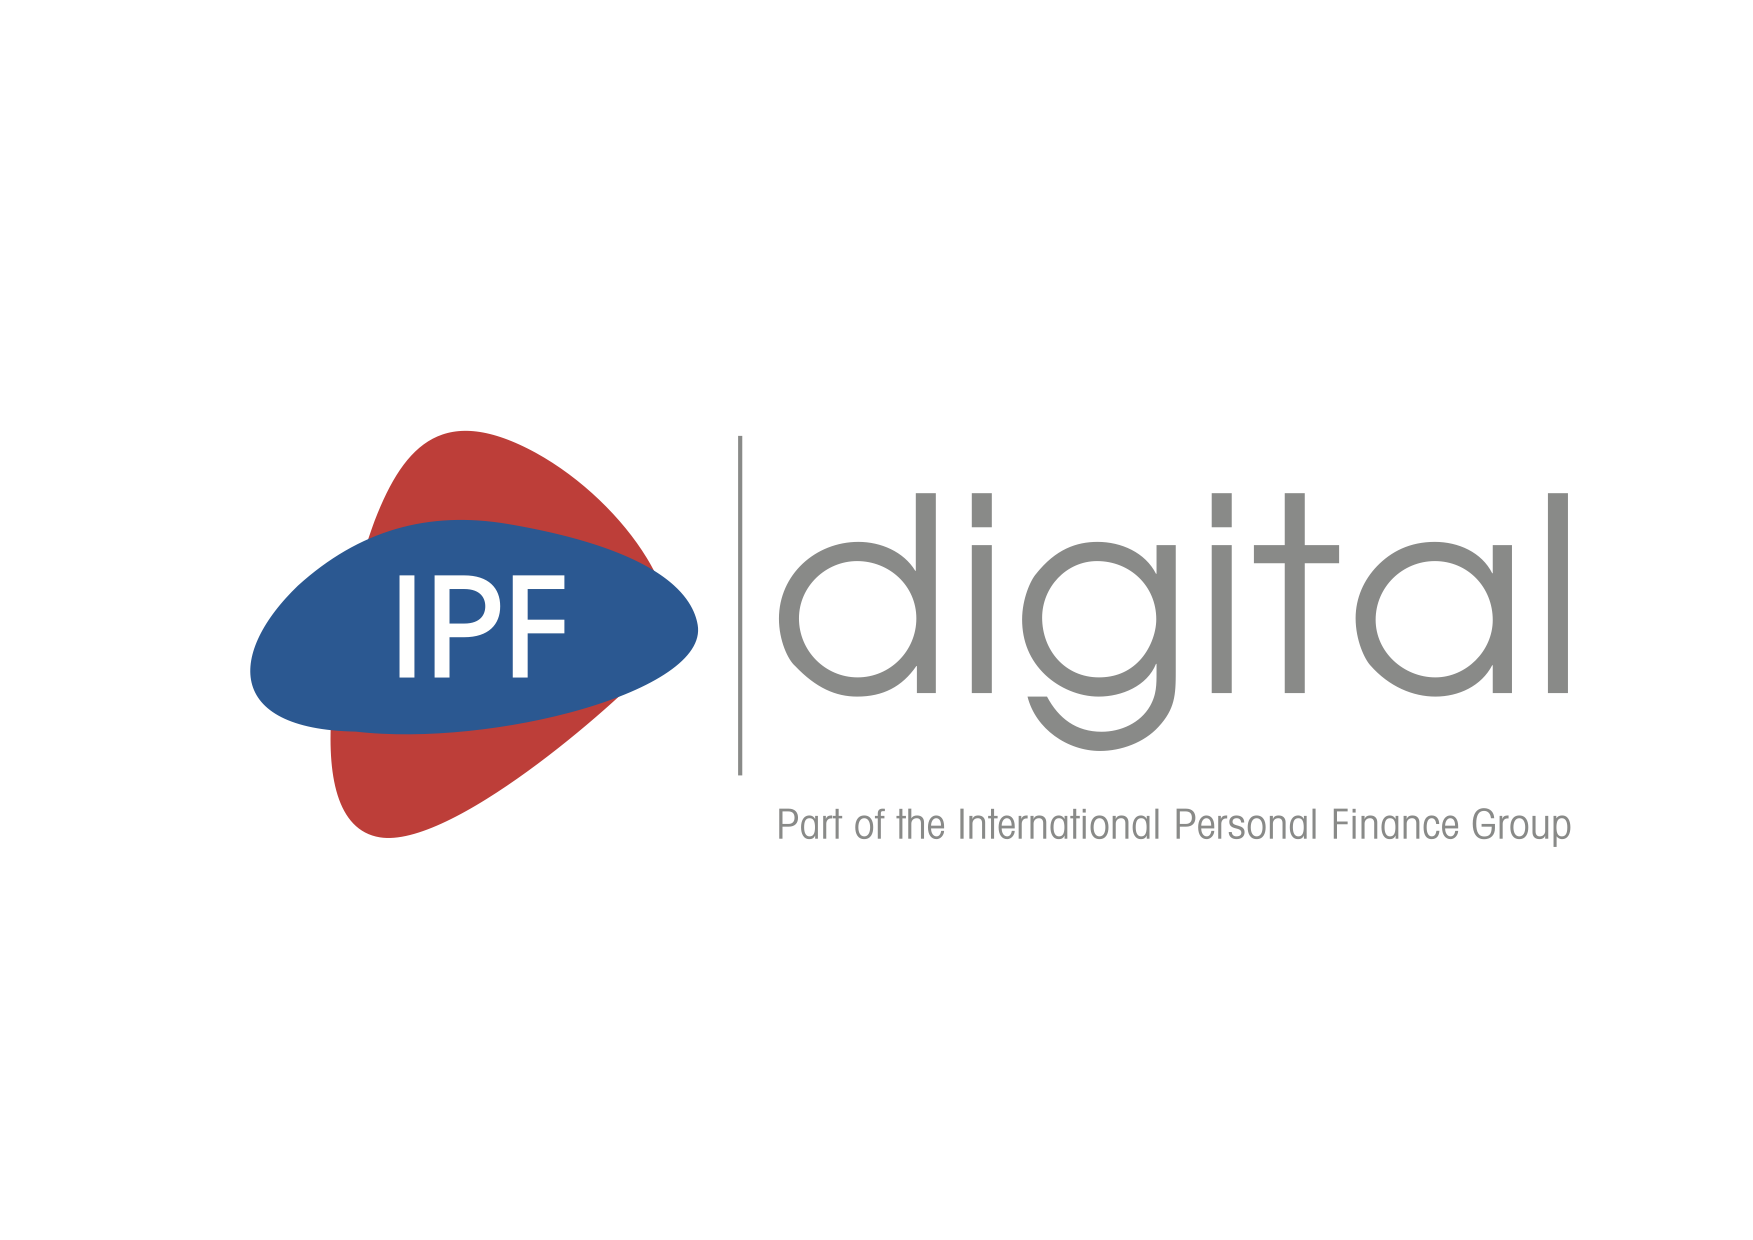 IPF new logo_Digital_final (2).png